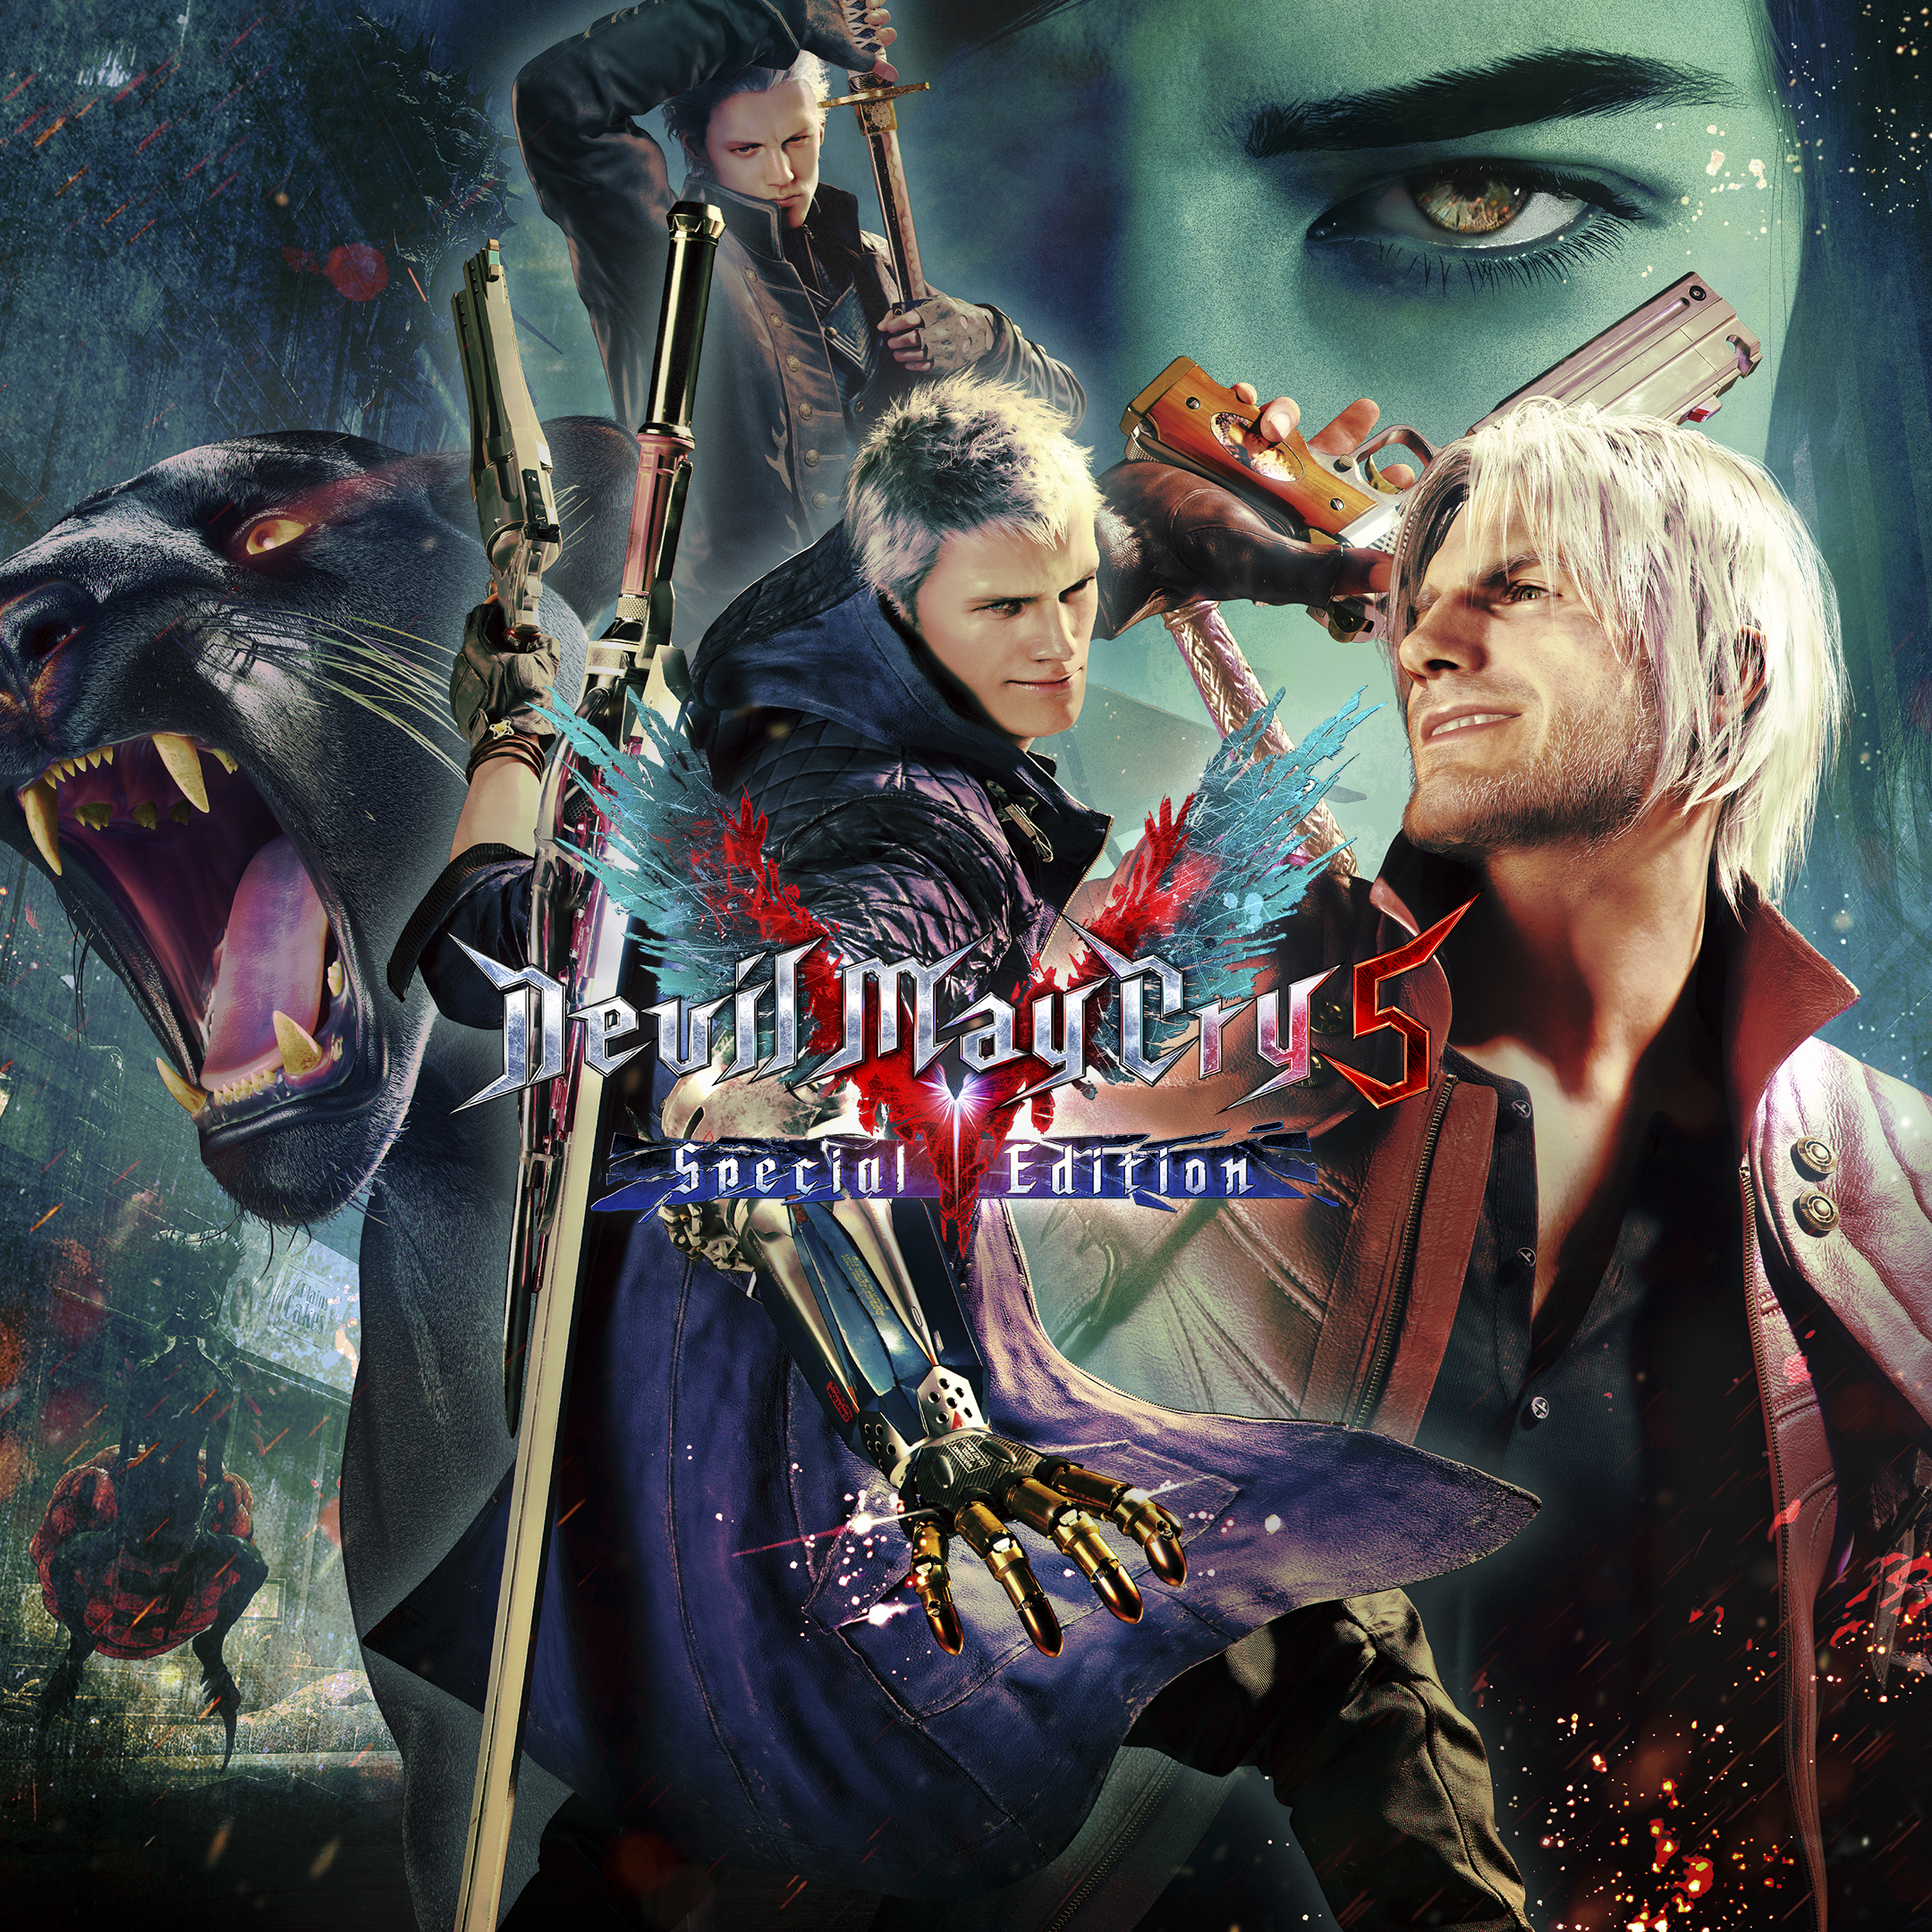 Devil May Cry 5: Special Edition – butiksomslag